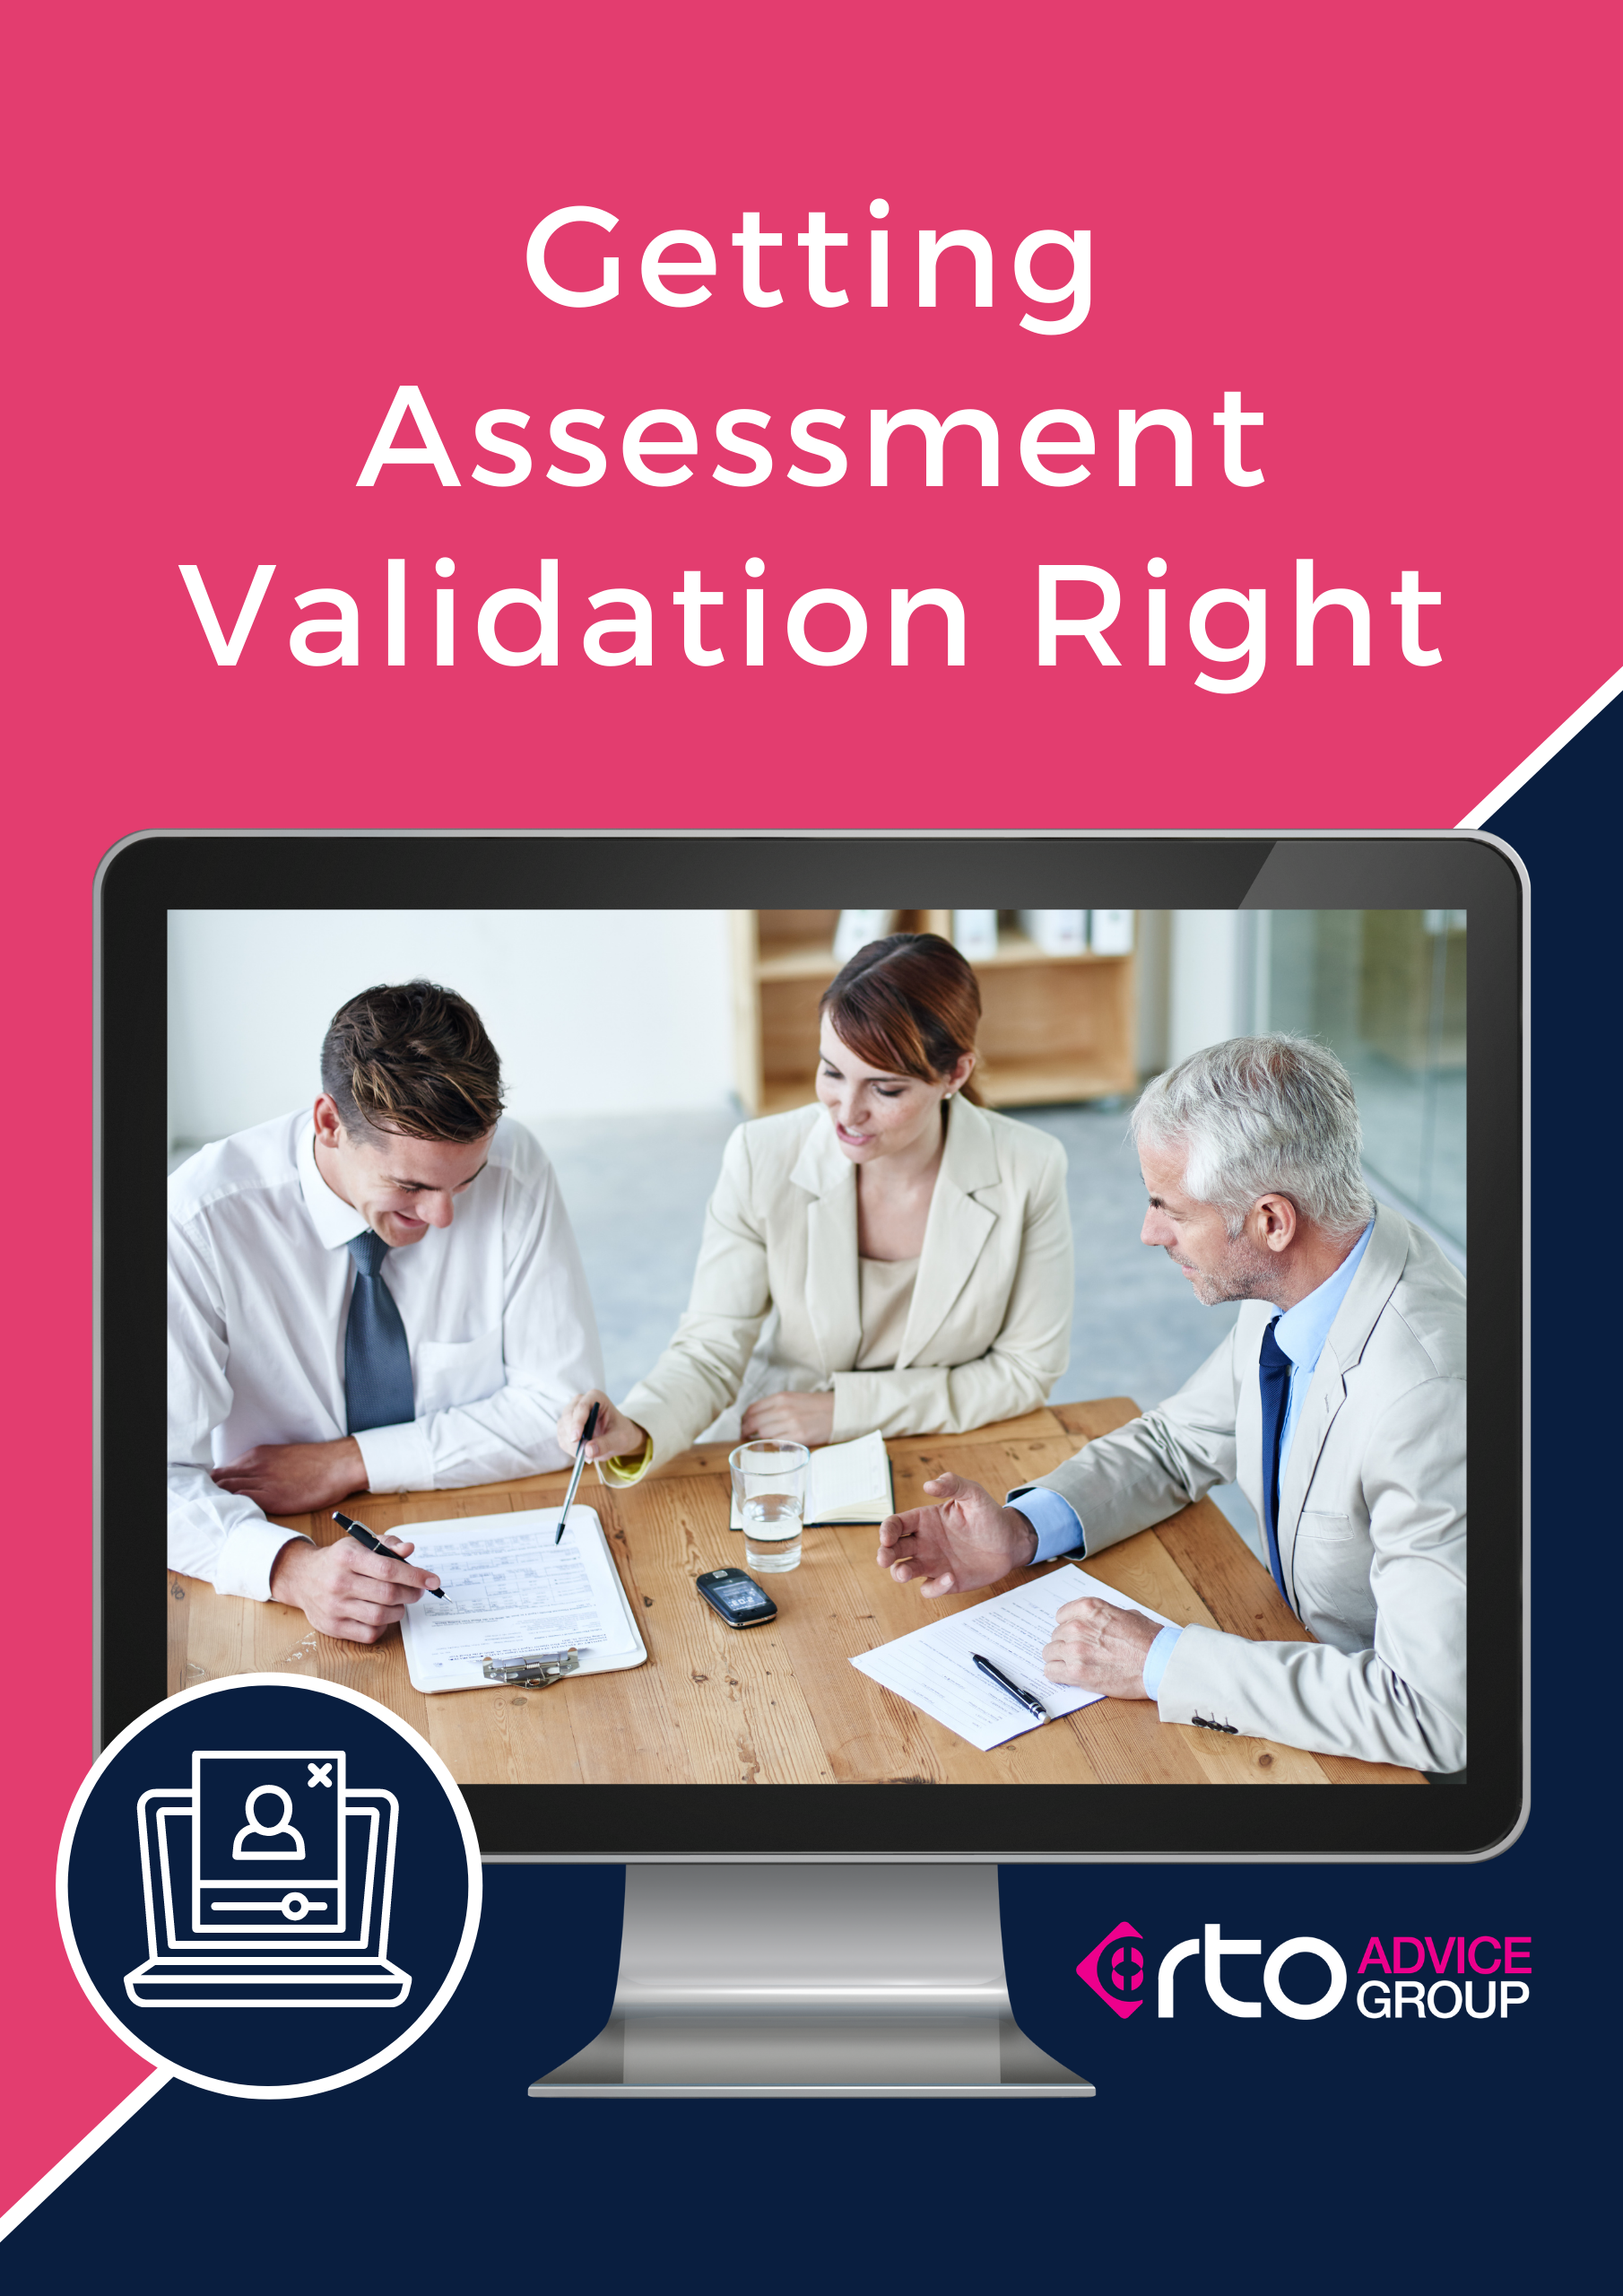 Getting Assessment Validation Right